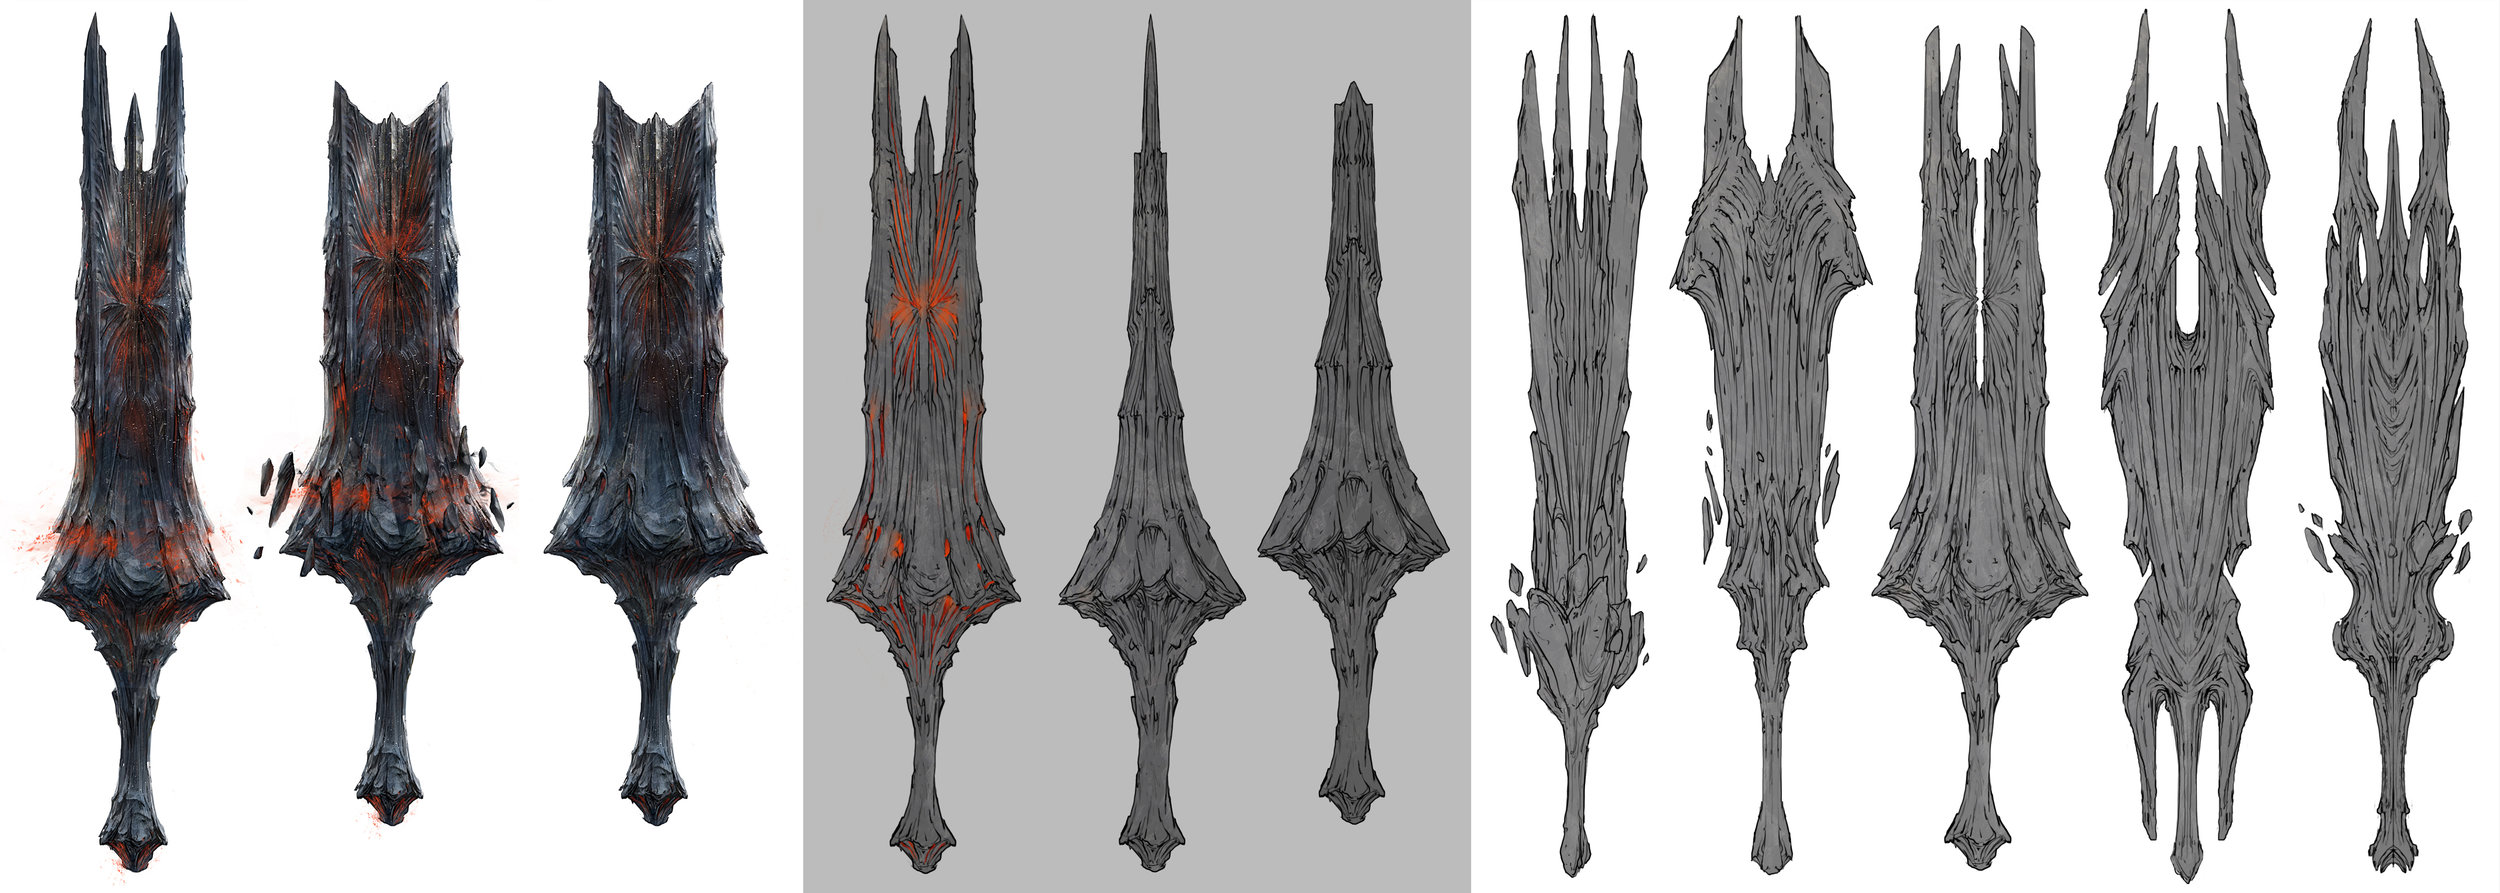 16 - Props Asura Weapons King's Sword.jpg